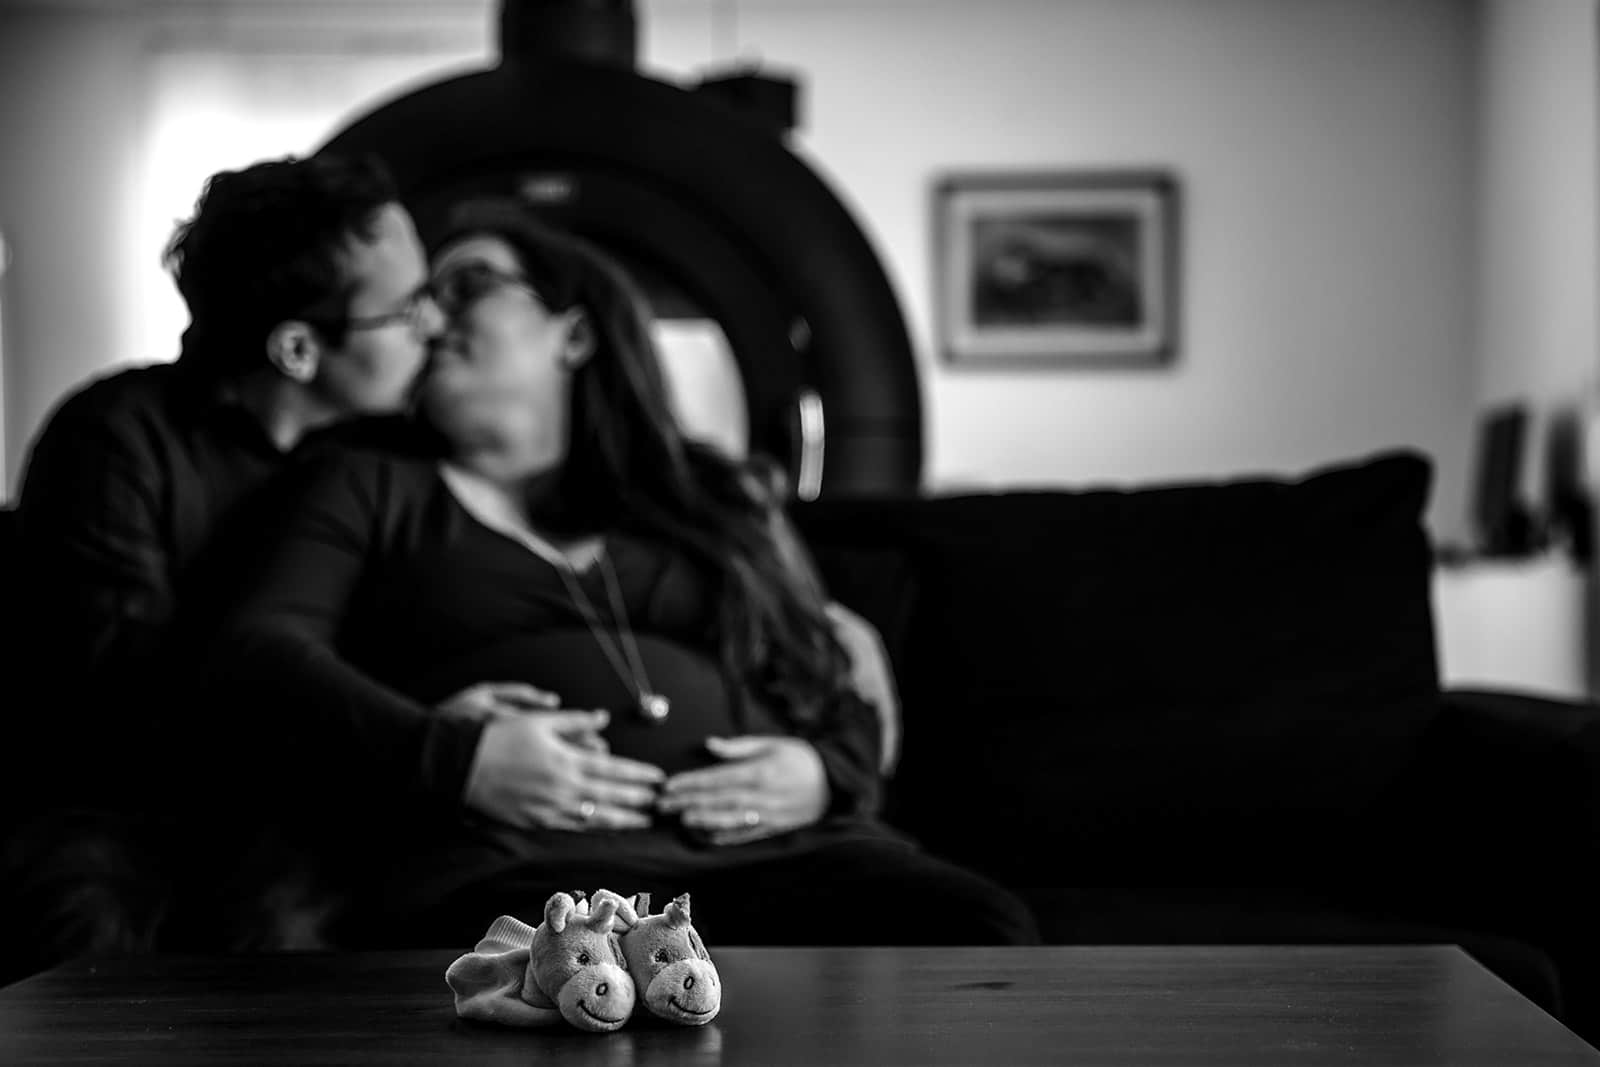 meilleur avis photographe de grossesse à domicile Bordeaux Pregnancy documentary photo Session séance photo grossesse nouveau né Photographe séance grossesse home studio Lyon. Photographe grossesse Lyon. Photographe nouveau né Lyon